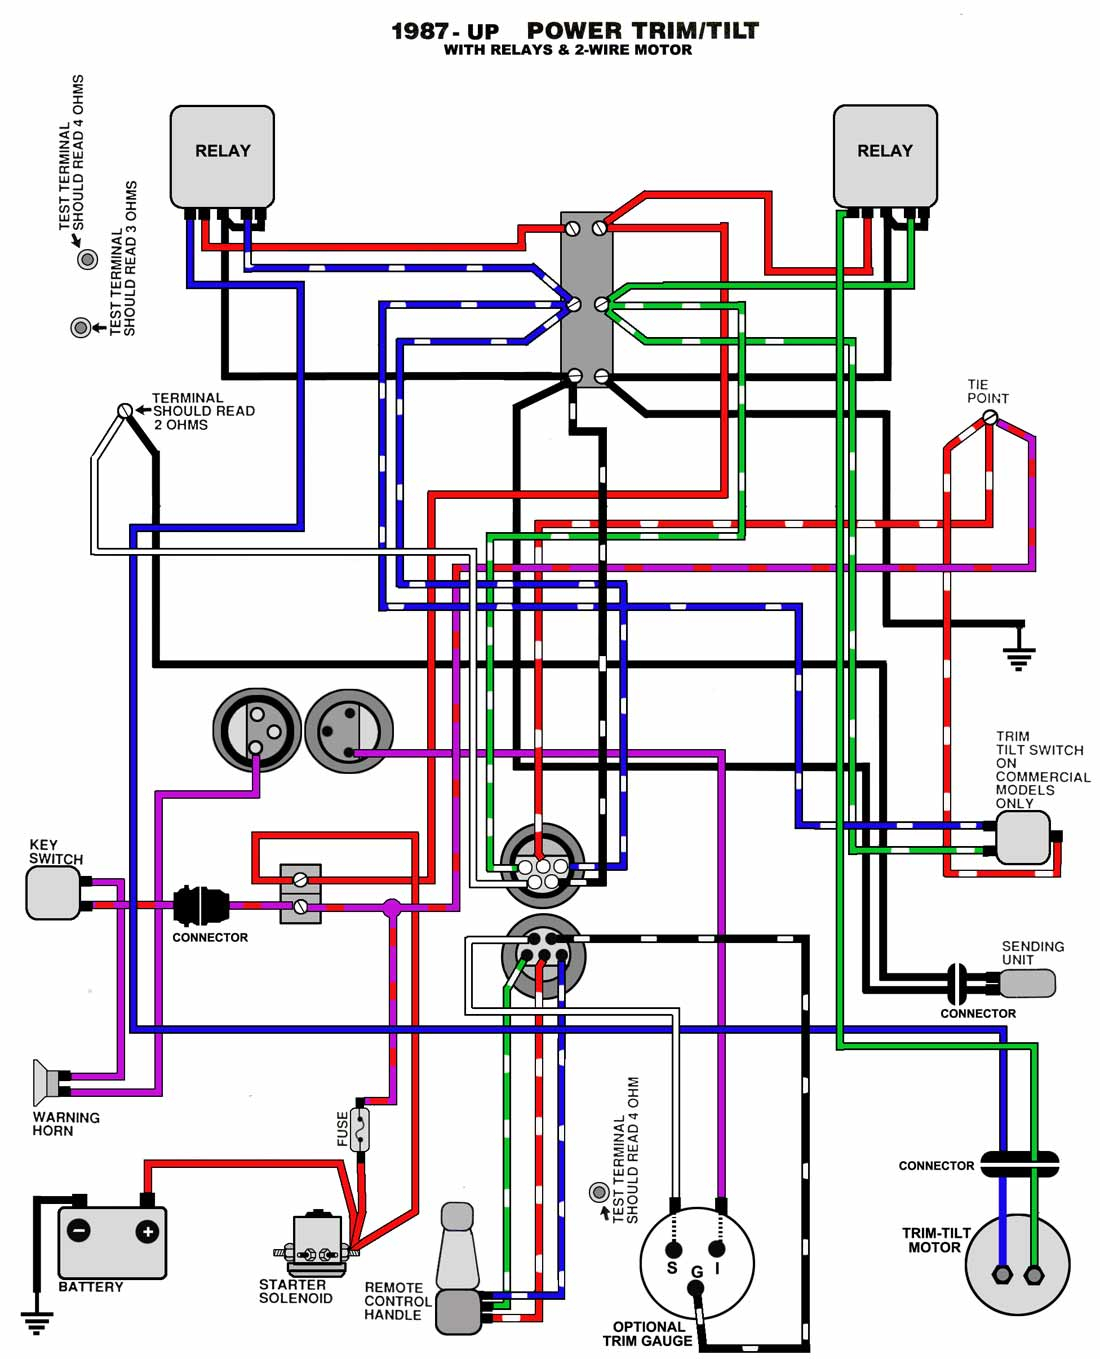 1997 Mercury Outboard Wiring Diagram Electronic Wiring Diagrams Mercury  Wiring Color Code 0n 165 1980